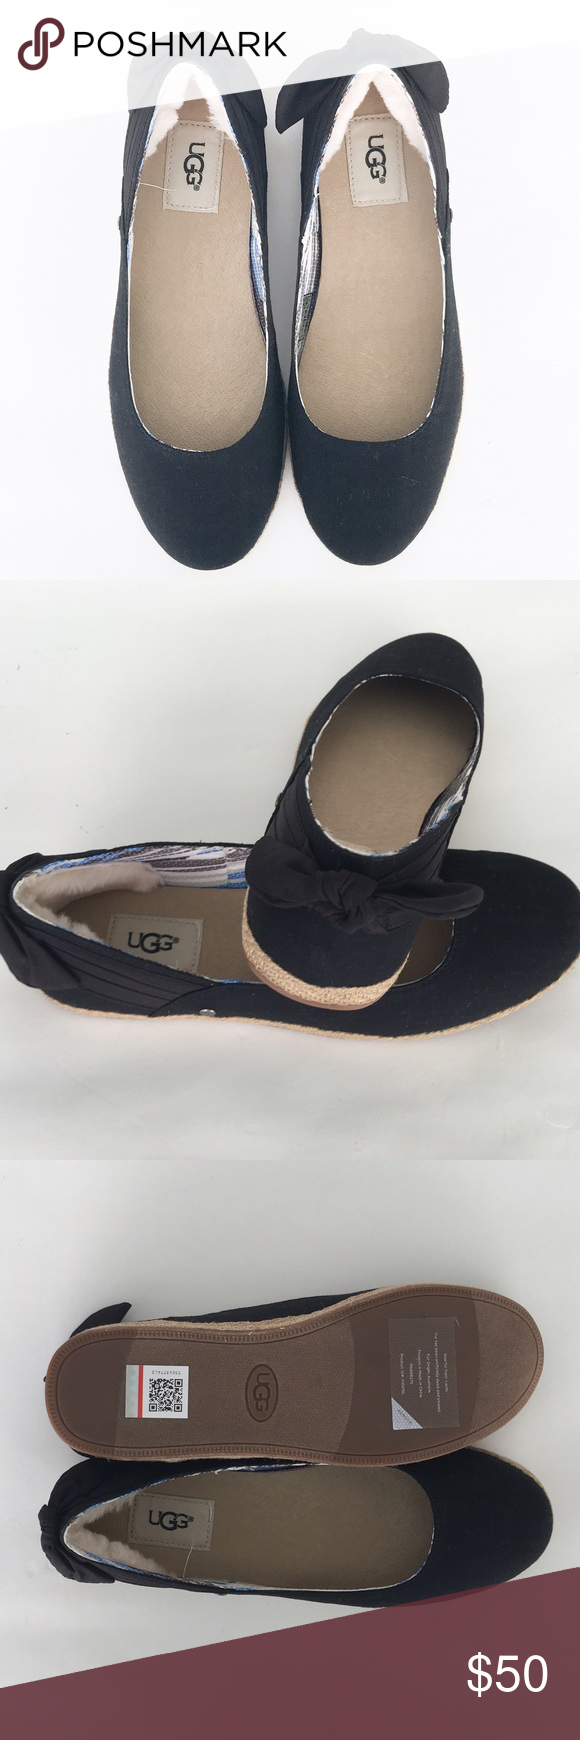 NEW UGG Australia Flats Uppers of cotton canvas and jute